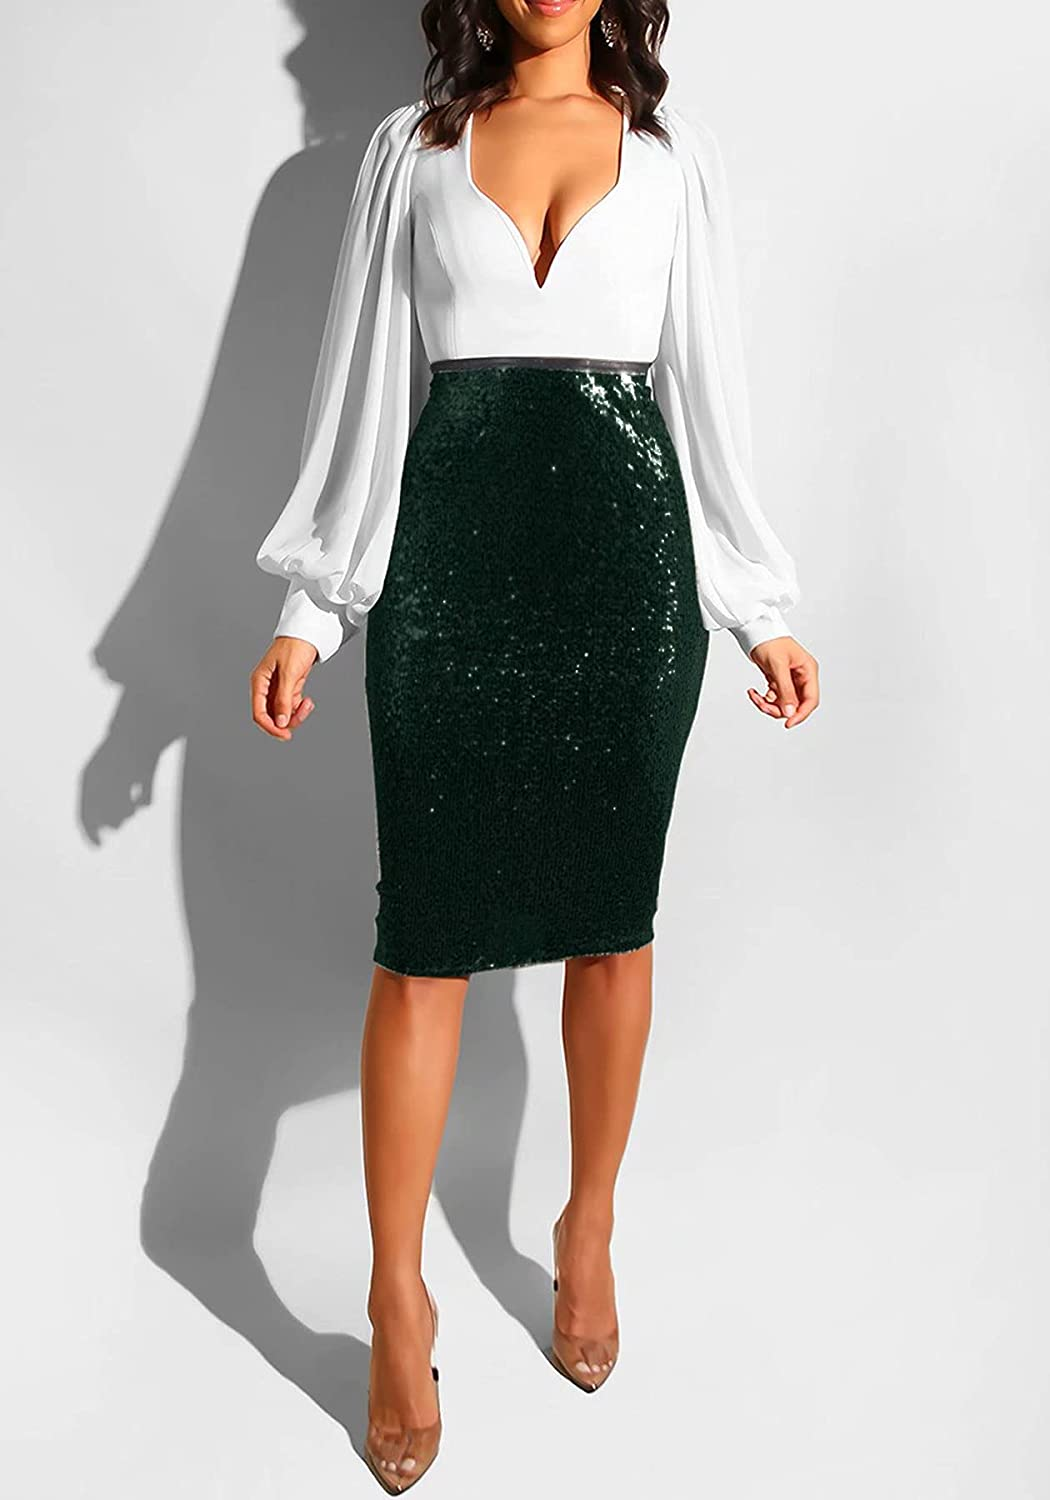 LROSEY Elegant Sequence Skirt for Women with Lining Bodycon High Elastic Waisted